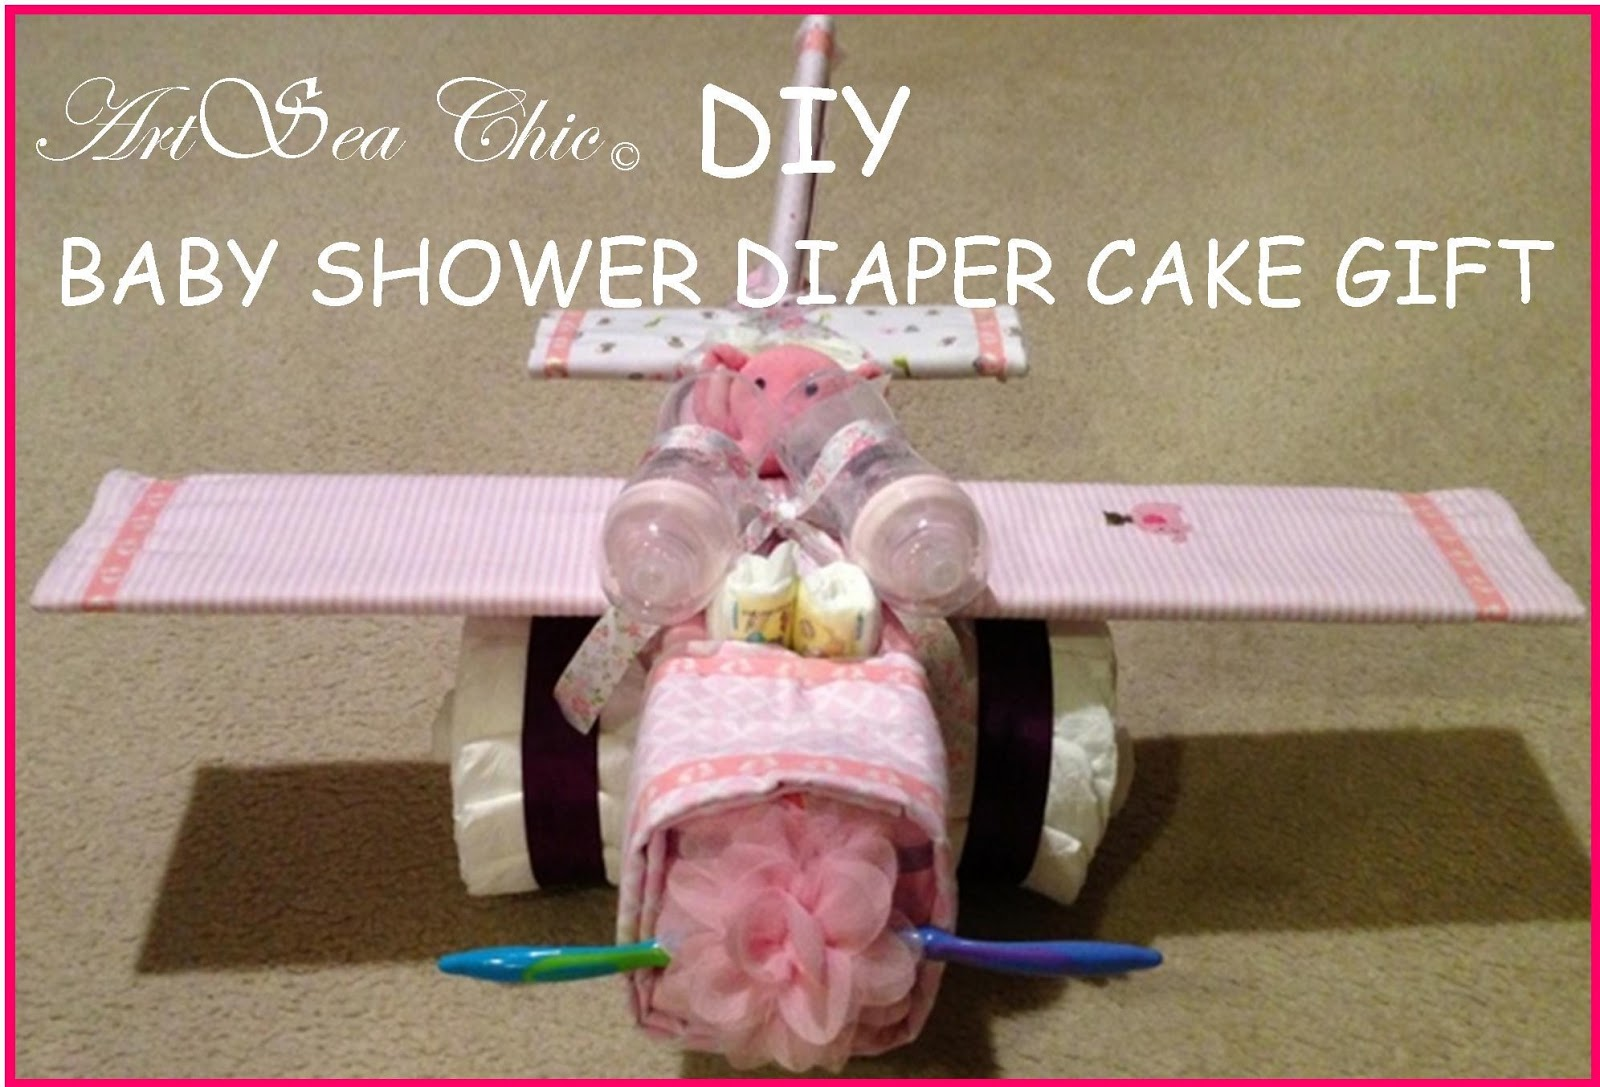 DIY Baby Shower Airplane Diaper Cake Gift